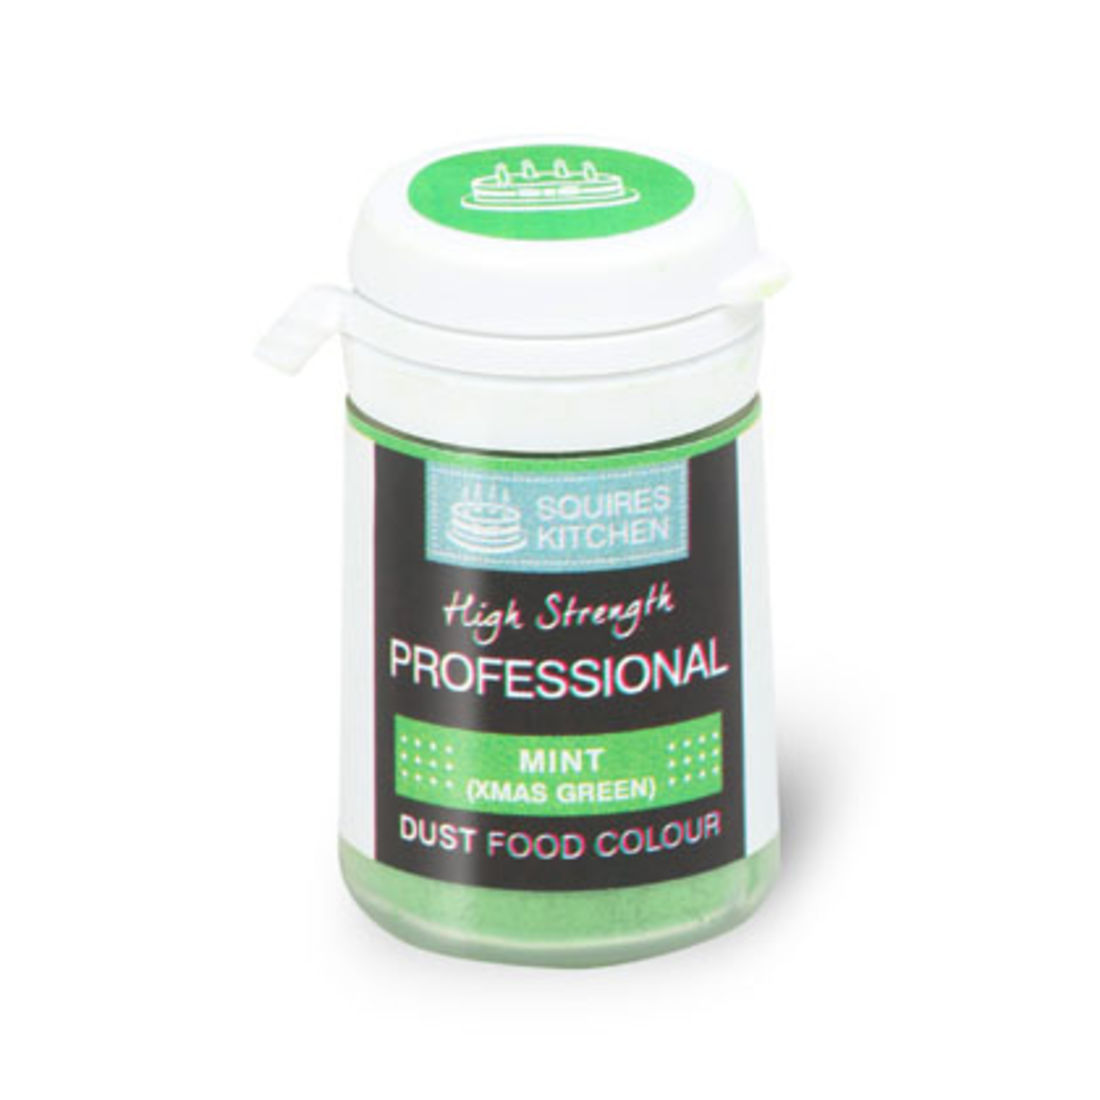 How To Use Squires Kitchen Dust Food Colour